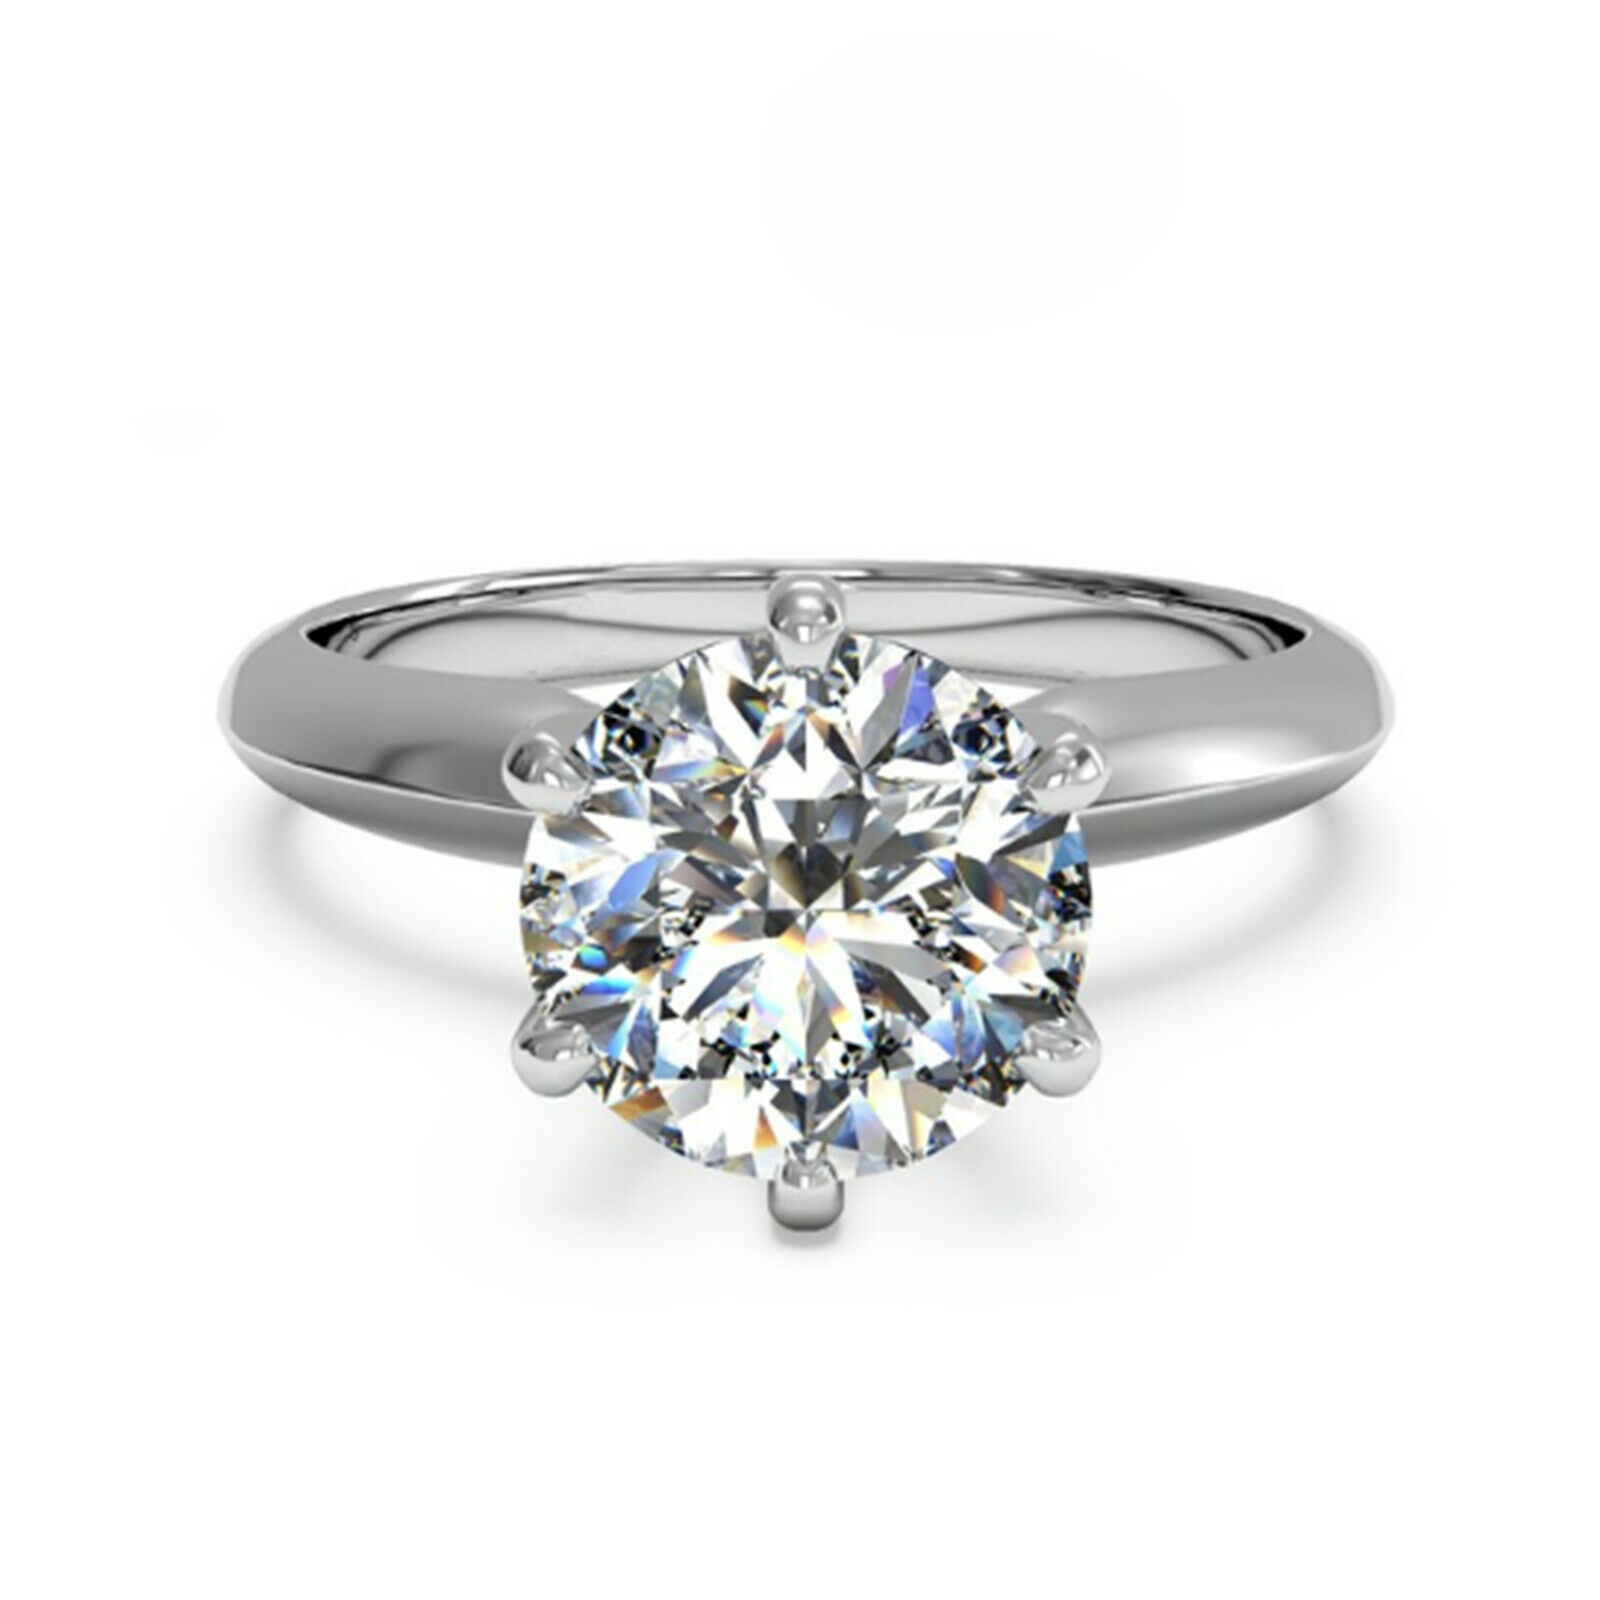 2 Ct Bridal Moissanite Engagement Ring Round Cut Real 14K White gold Size 6 9 56